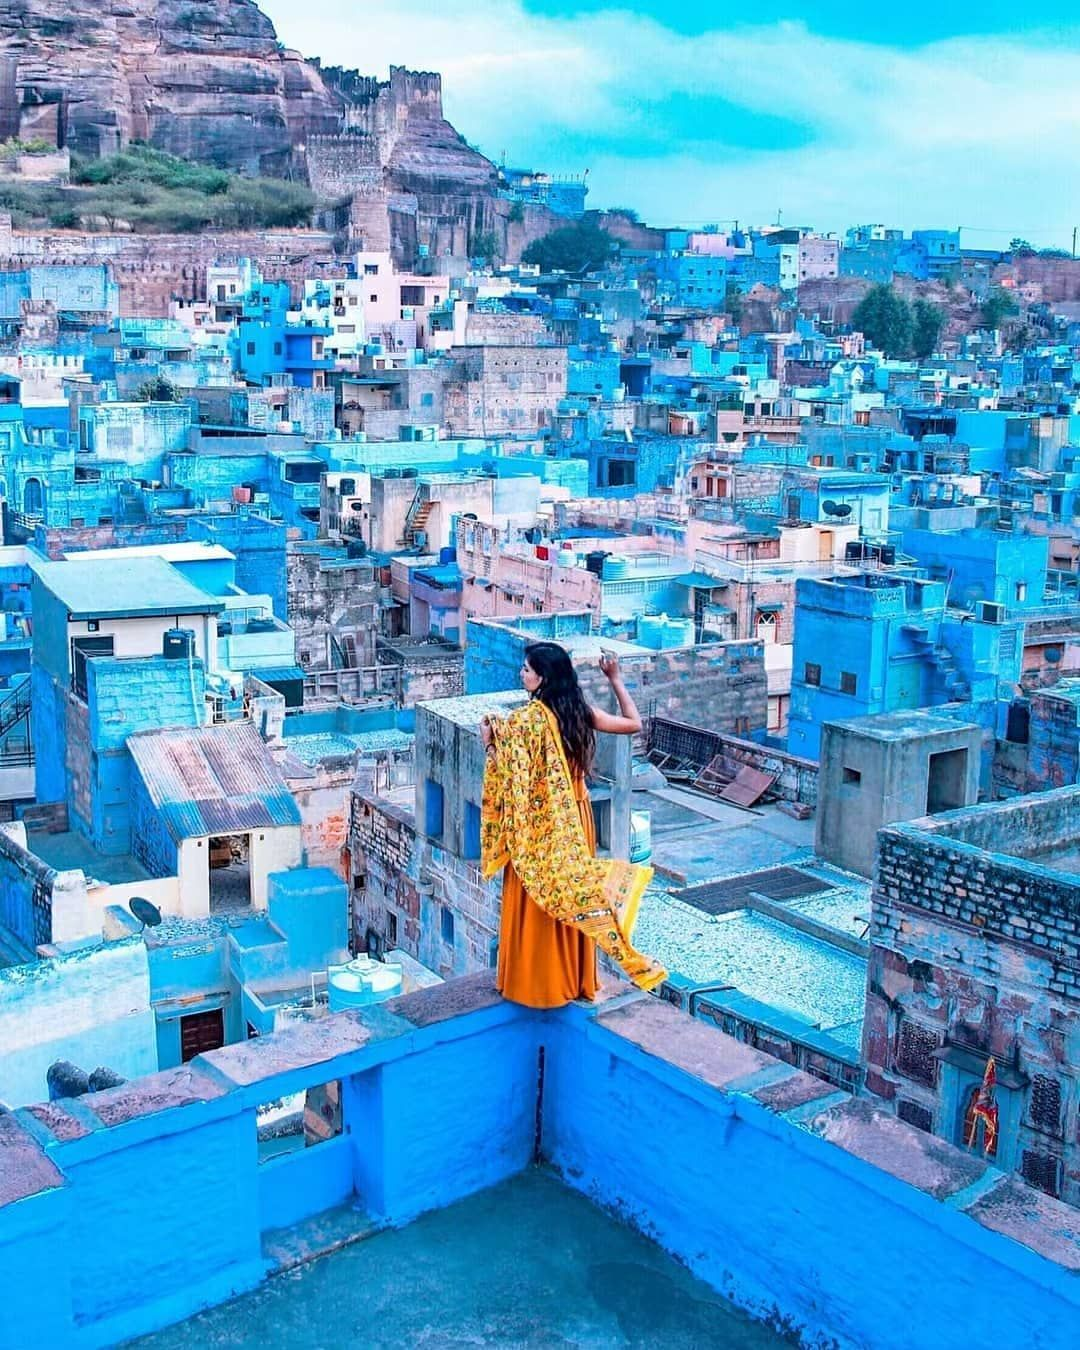 Photo By (deepthi__t) The ocean of blue houses of Jodhpur